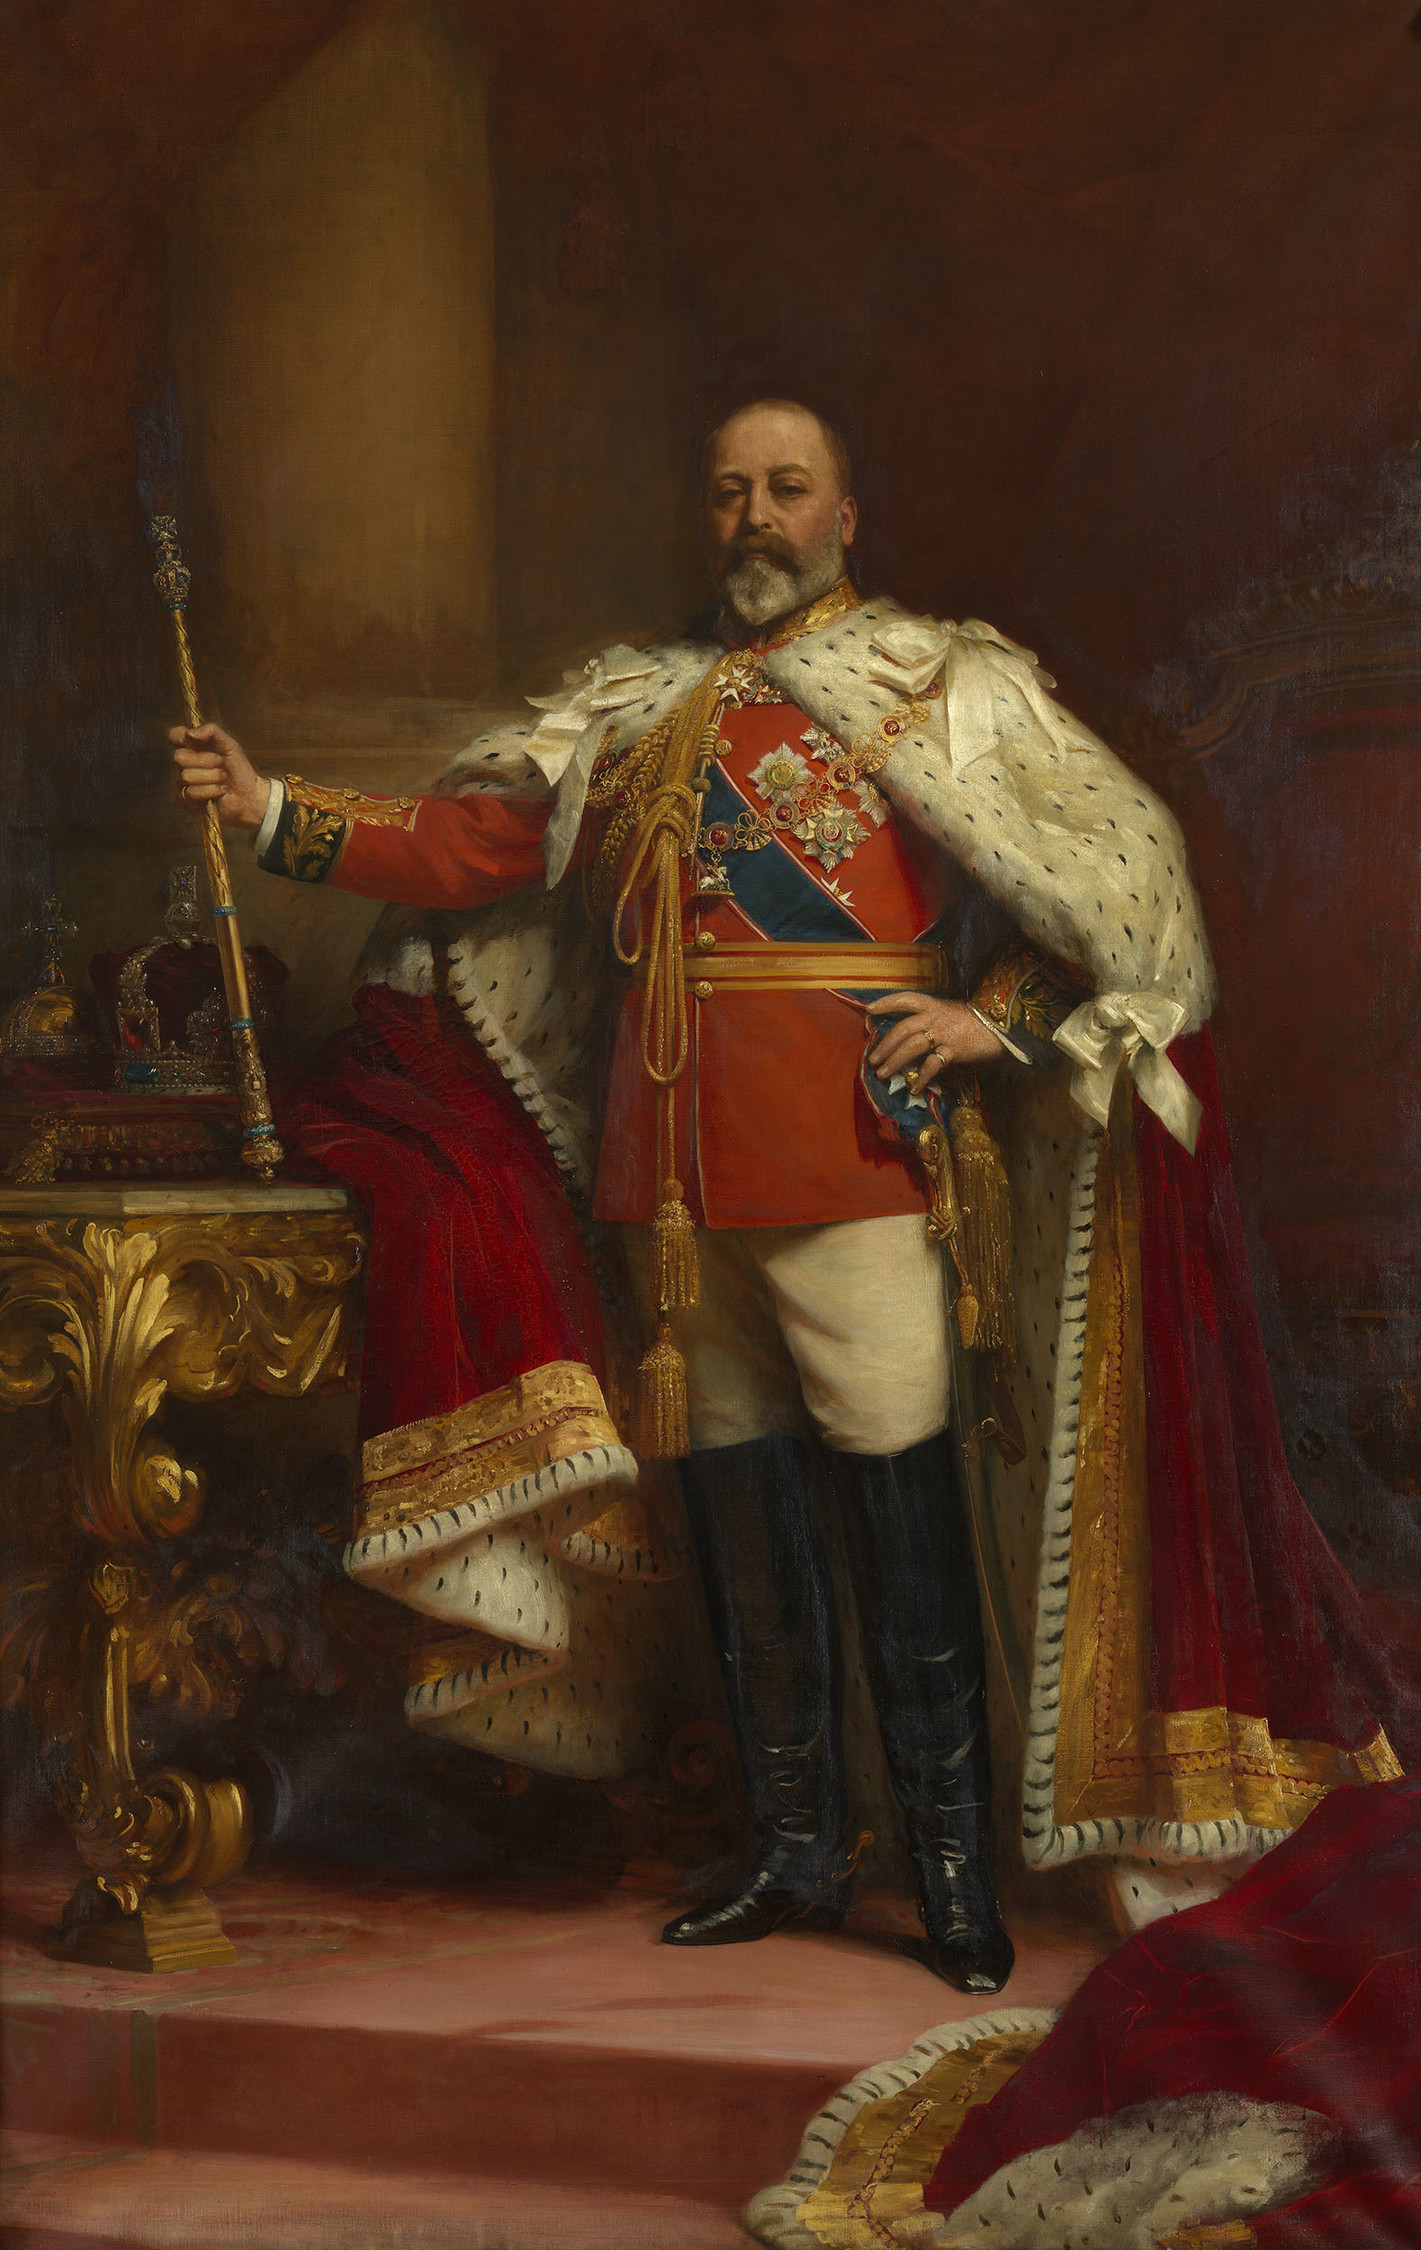 TOO !! KING EDWARD VII /& QUEEN ALEXANDRA PRINT NOW AVAILABLE AS CANVAS PRINT